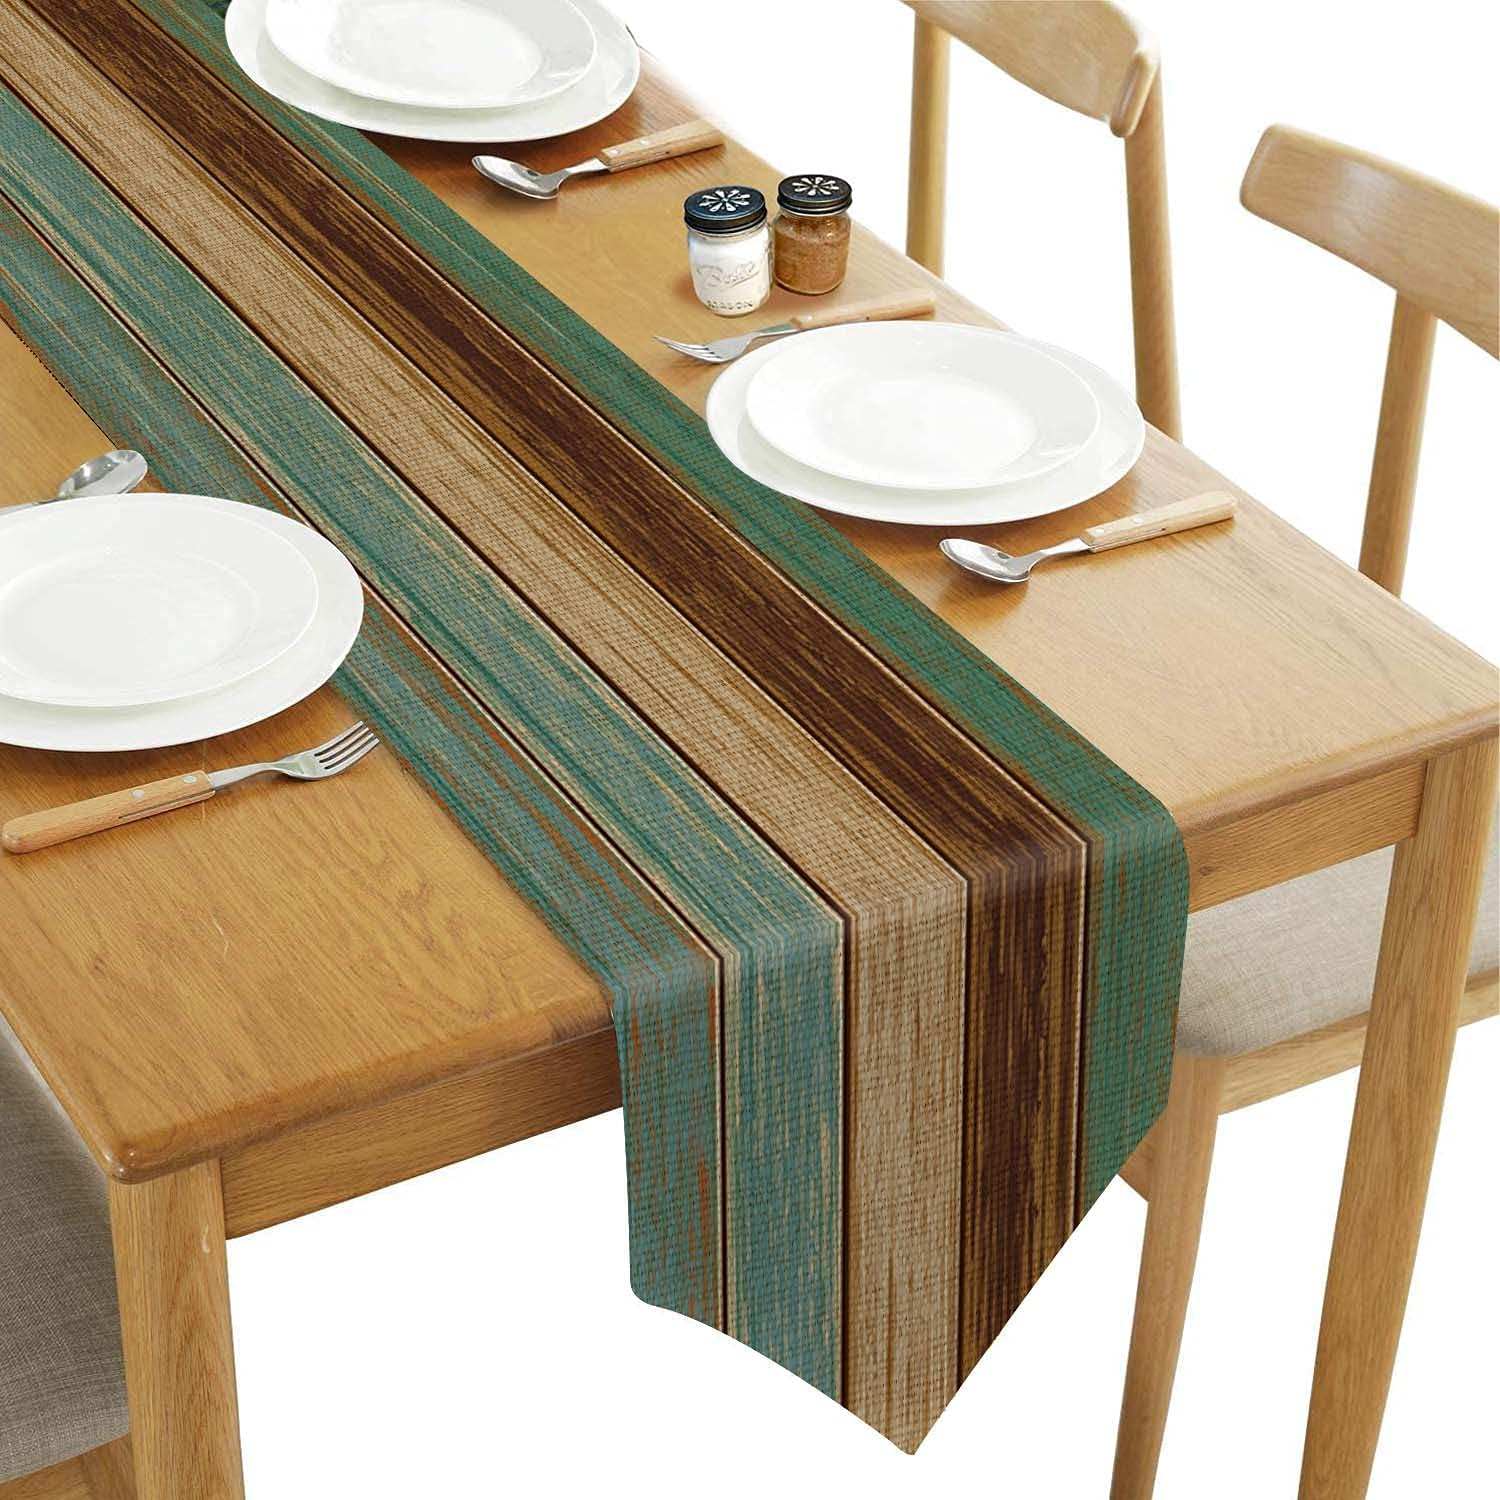 ATEDEANEI Dining Max 55% OFF Table Runner,Cotton Farmhous Kitchen Linen Selling and selling